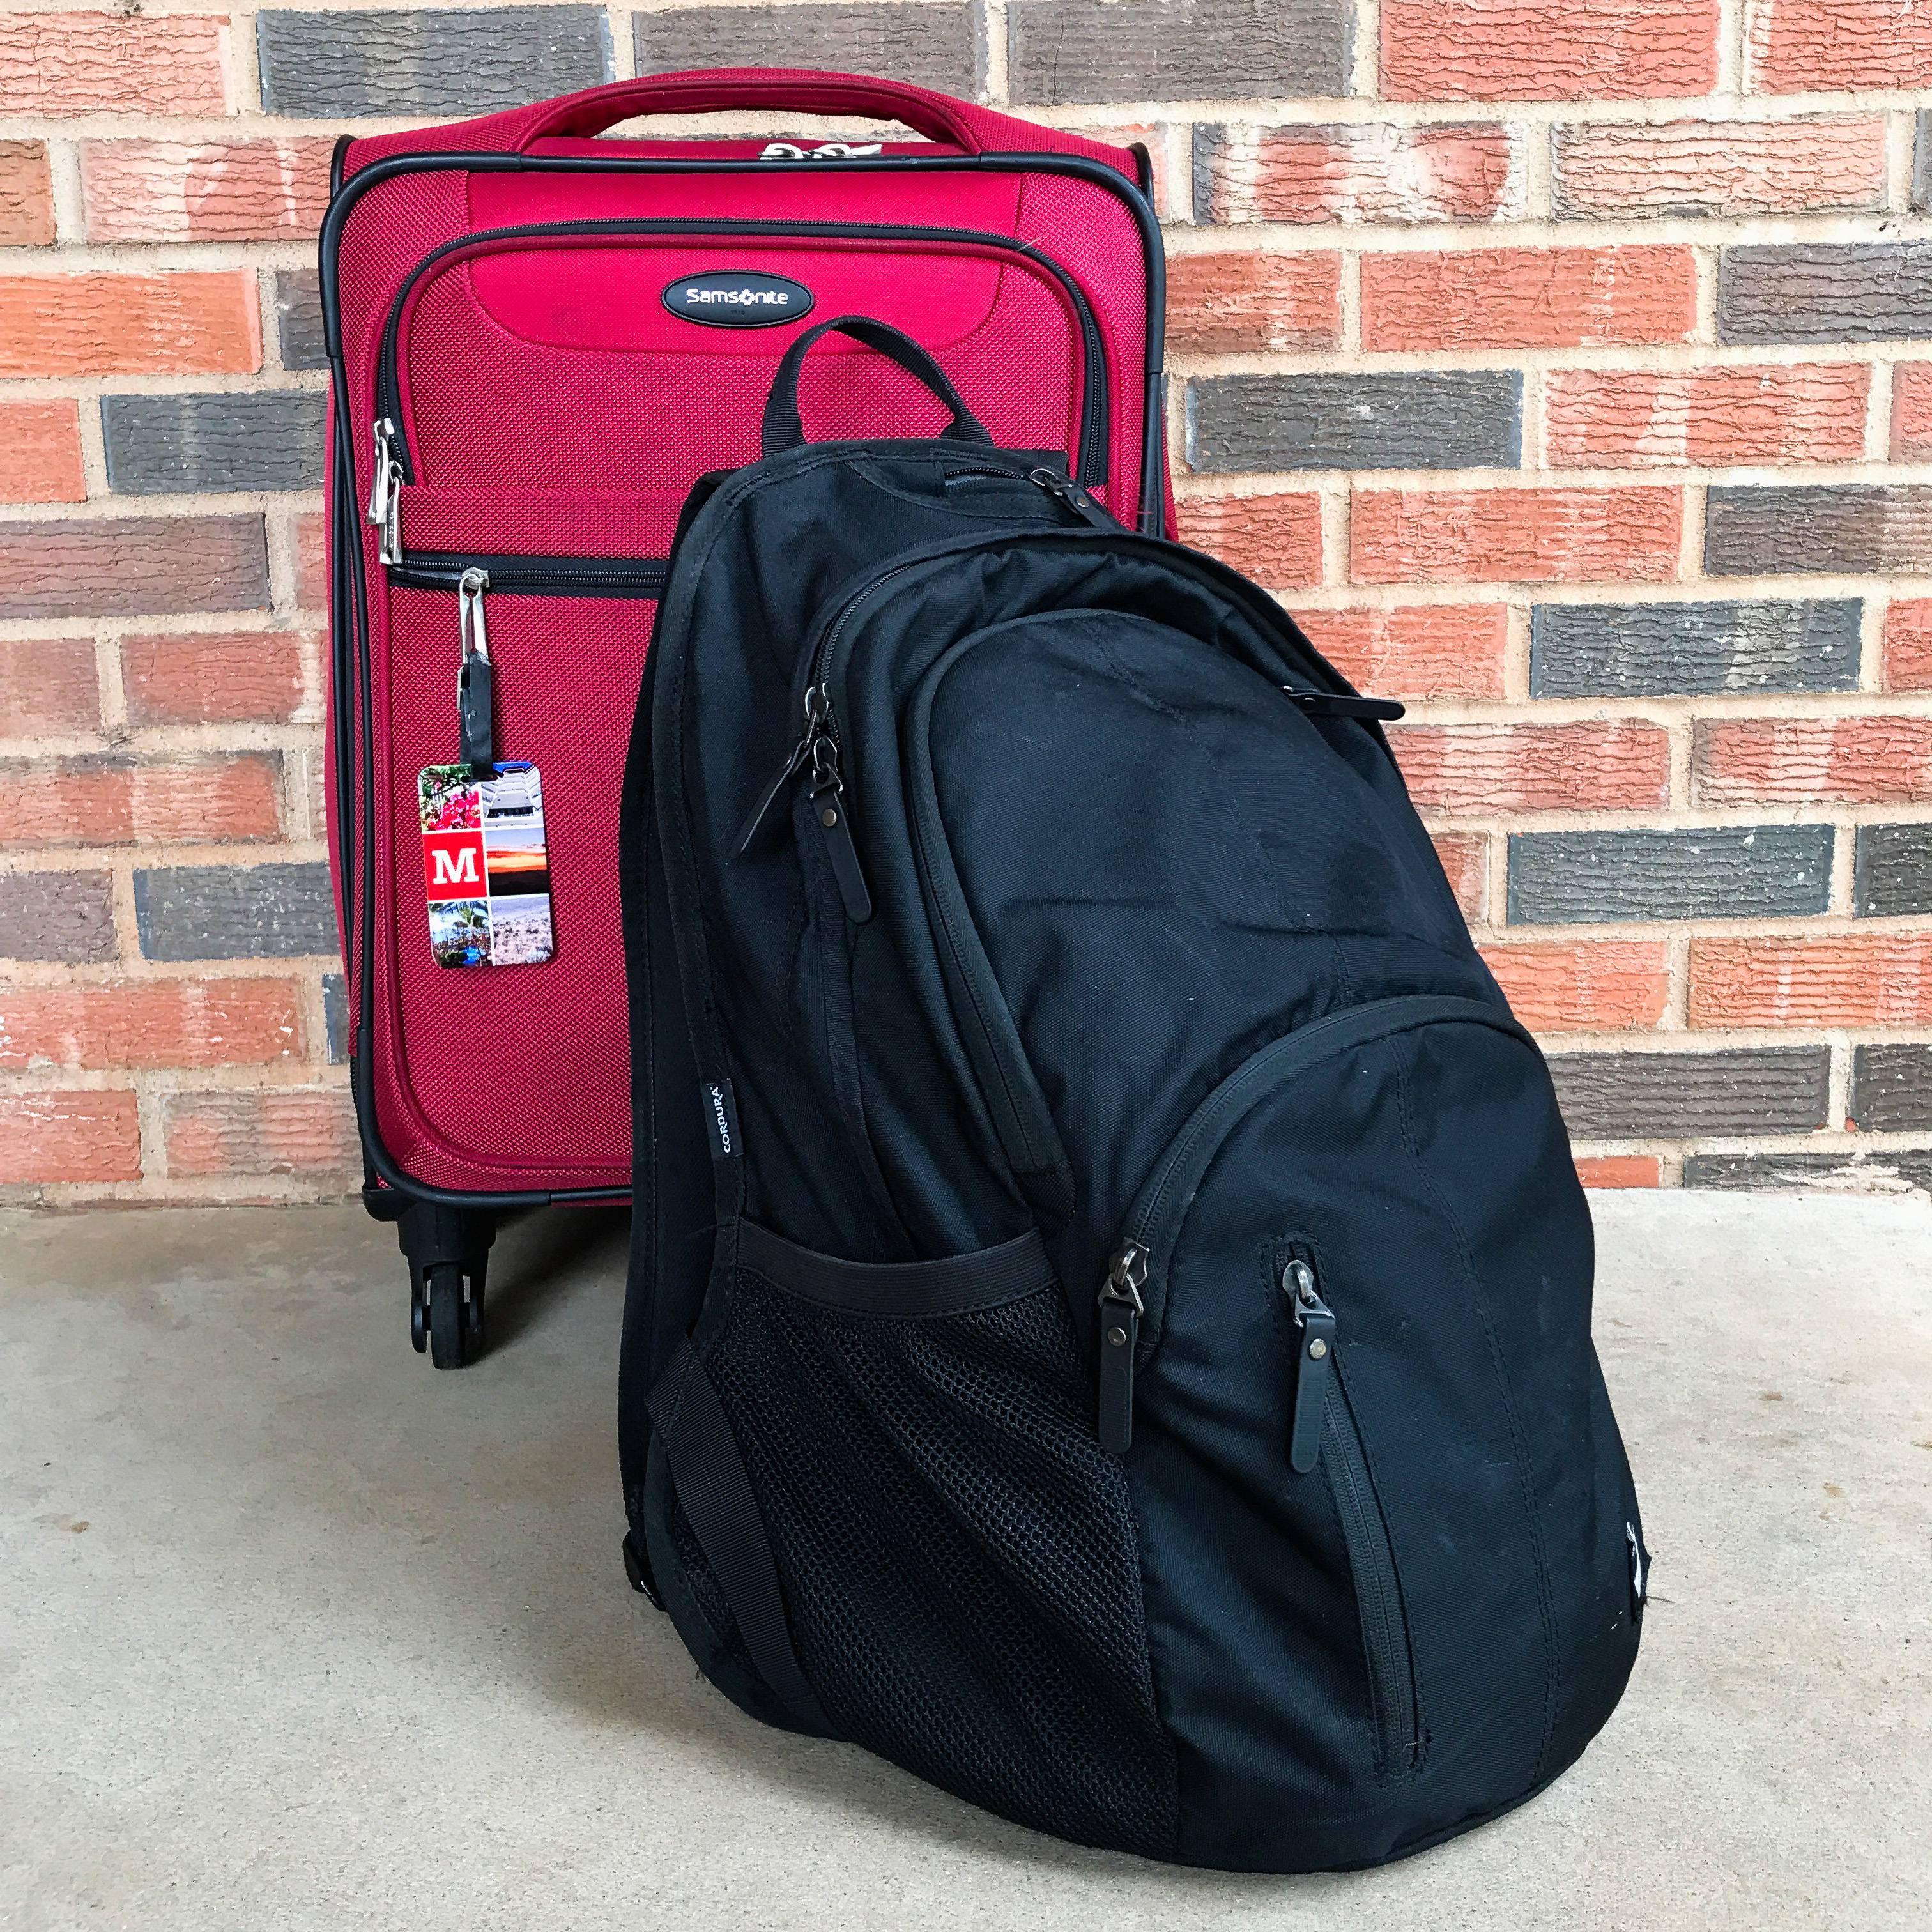 Long trip or short move? Here's how to pack!